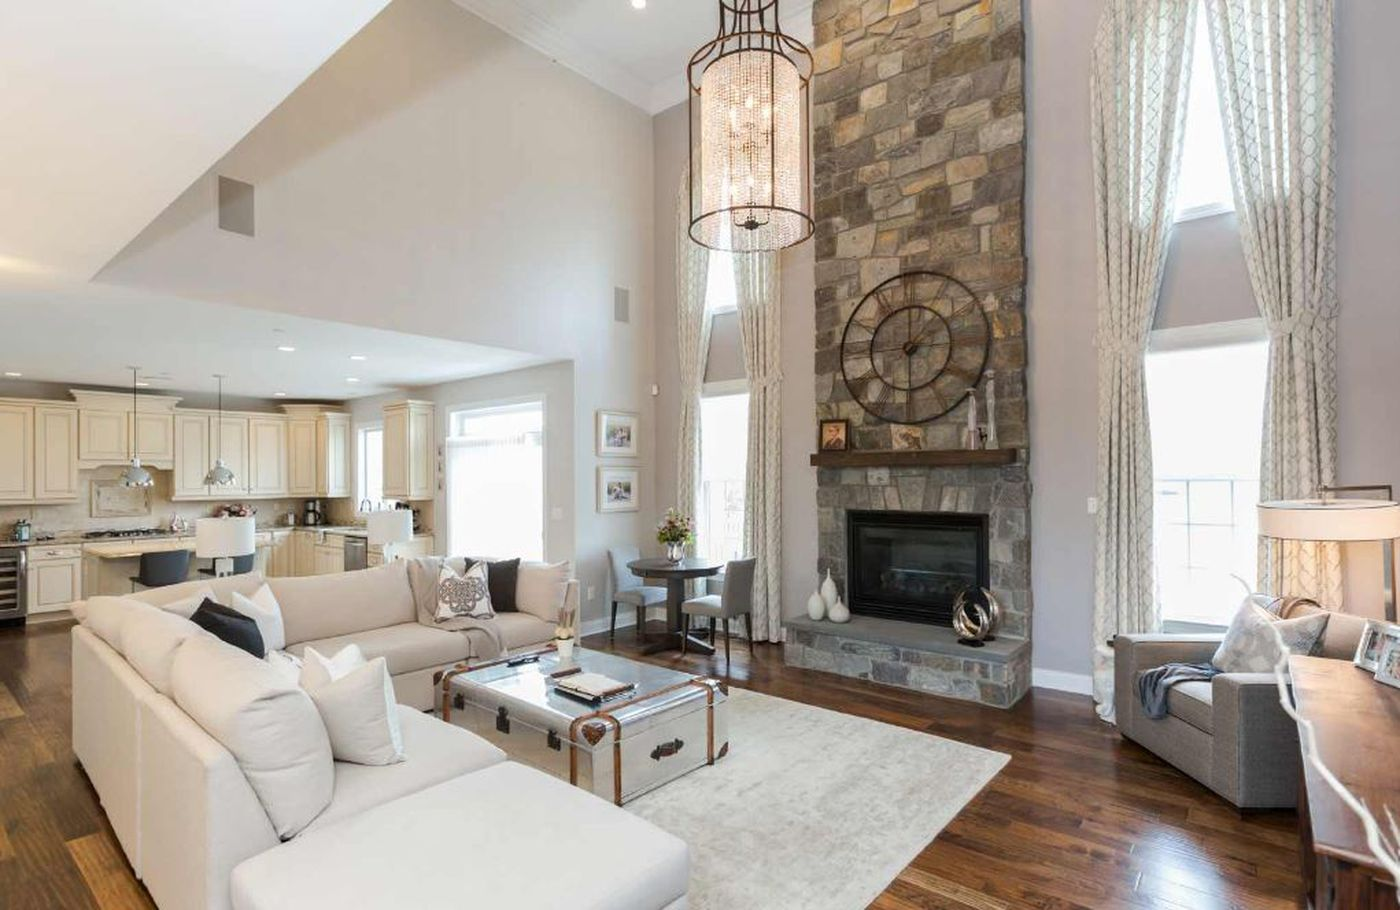 Interior designer christina henck recommends setting up a living room in an open concept such as